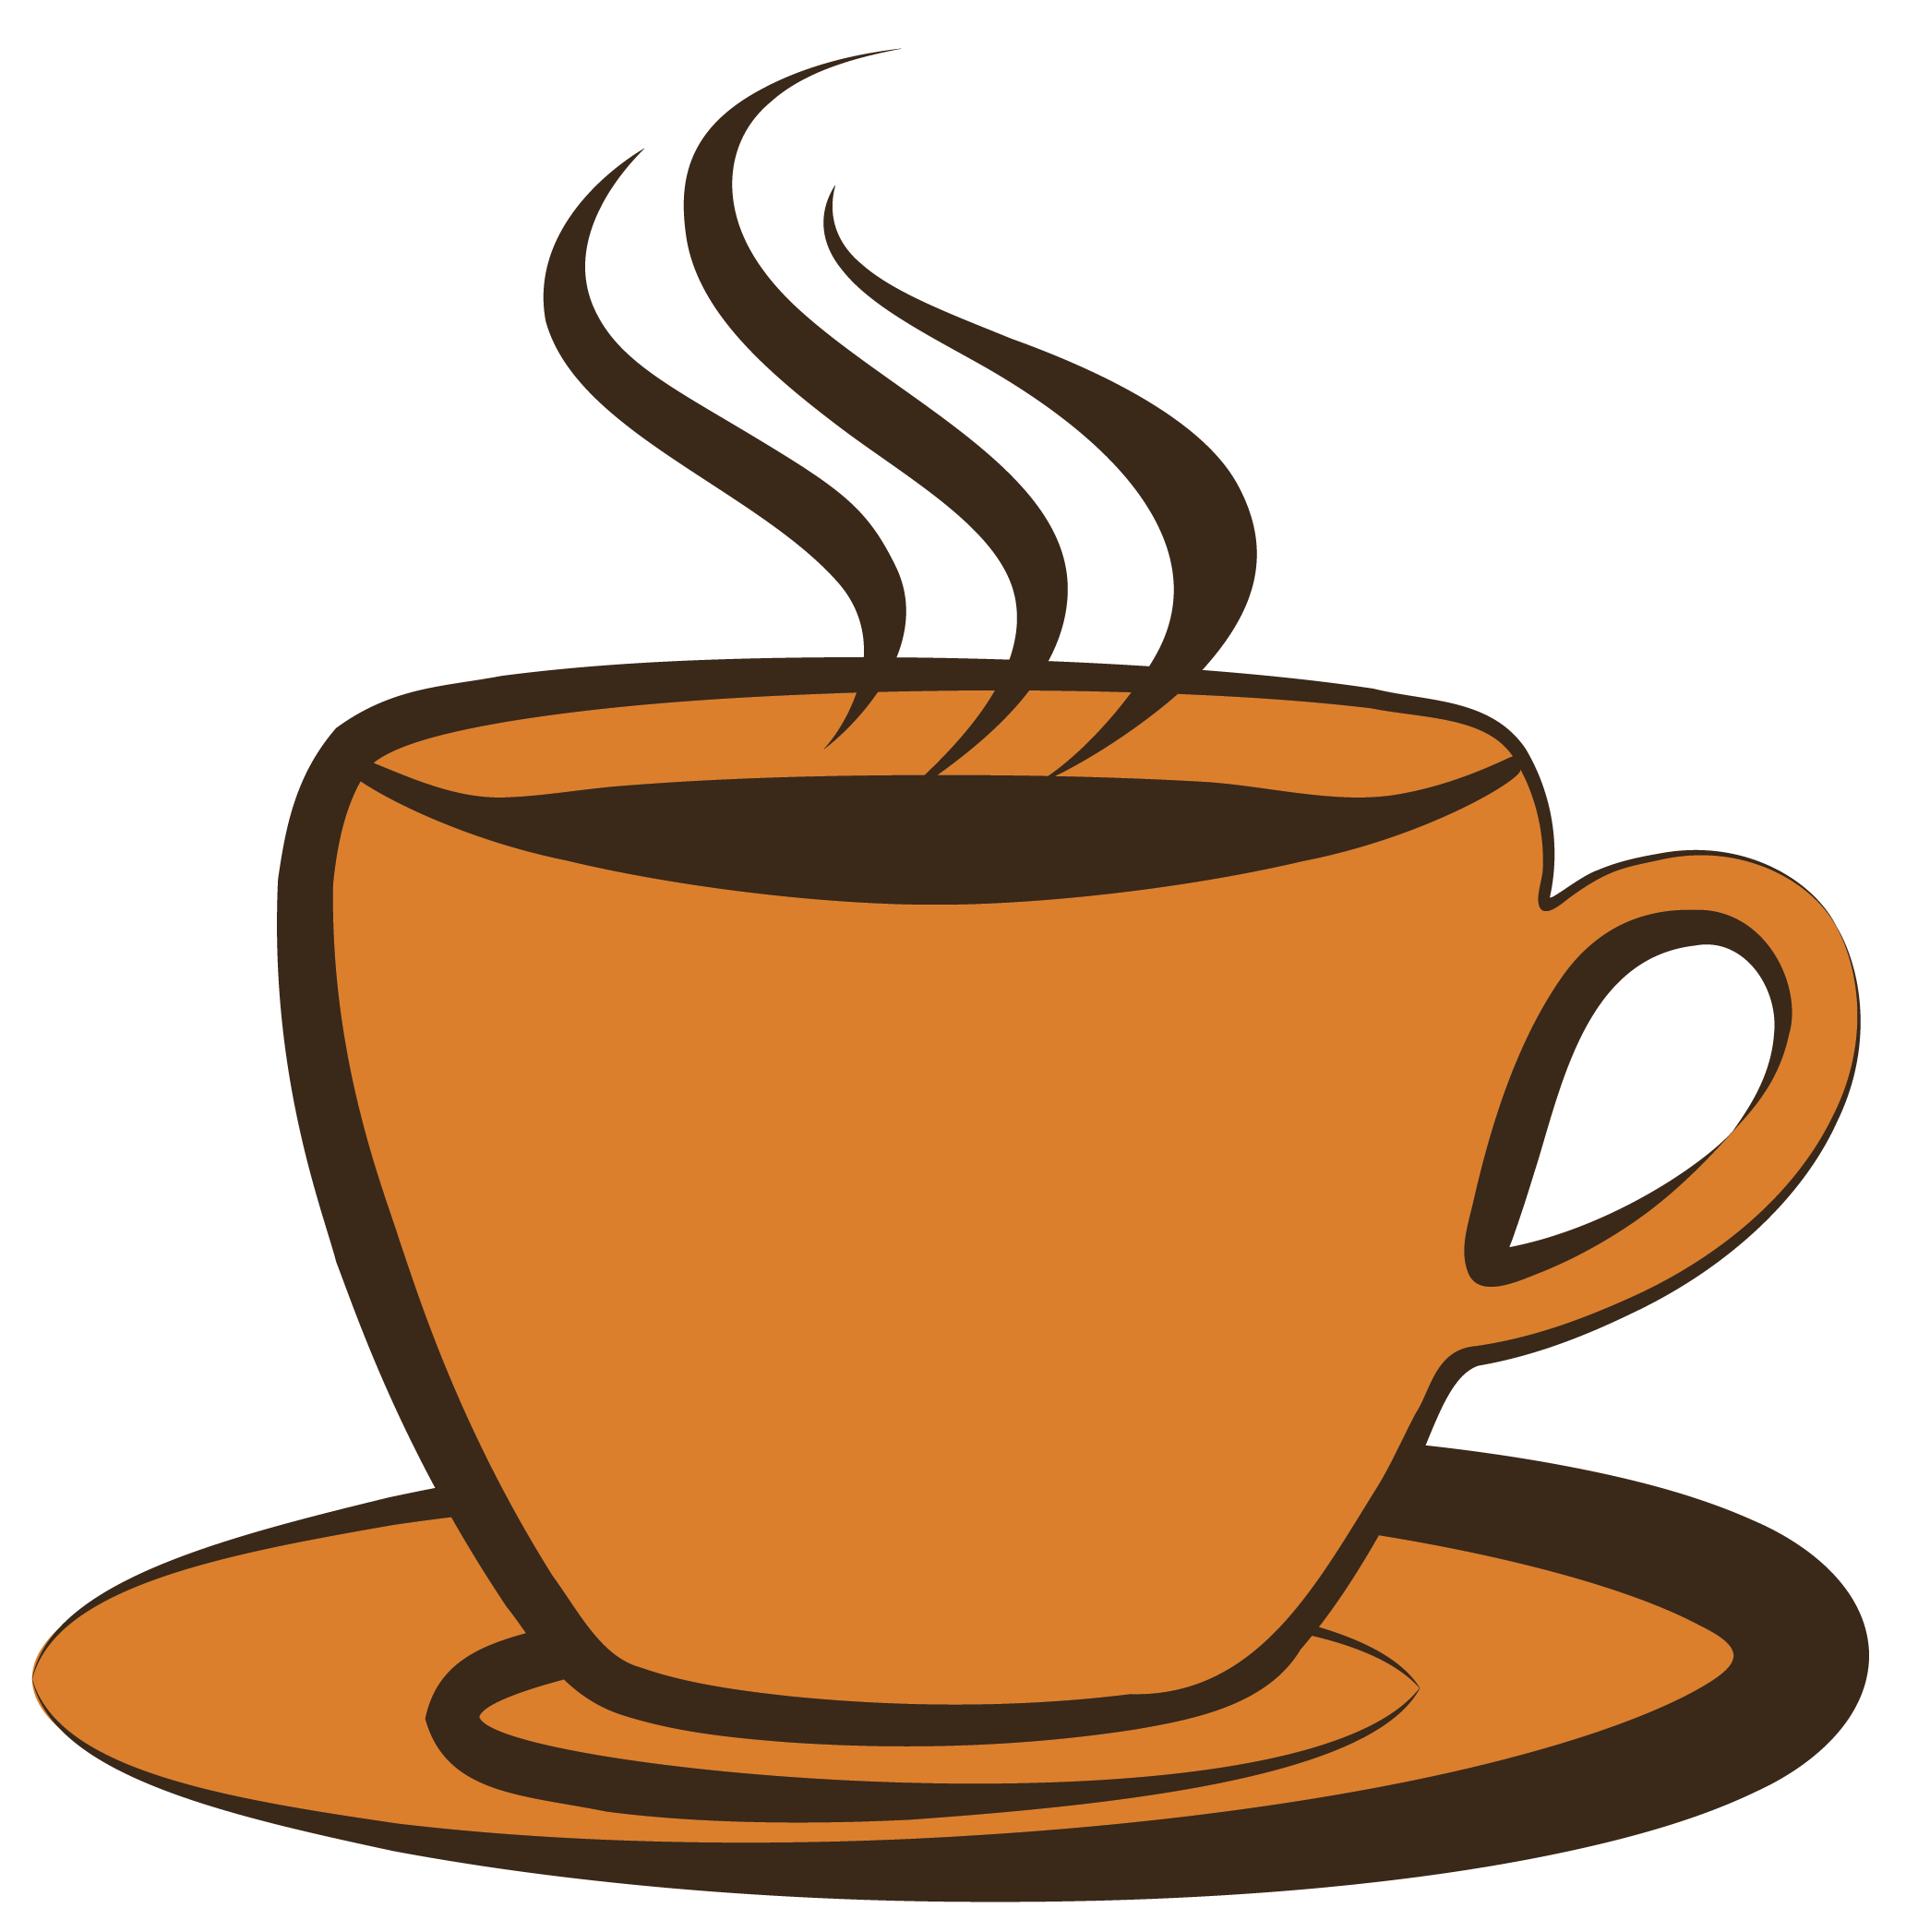 Coffee cup clip art free perfect cup of coffee clipart 3 clipartcow